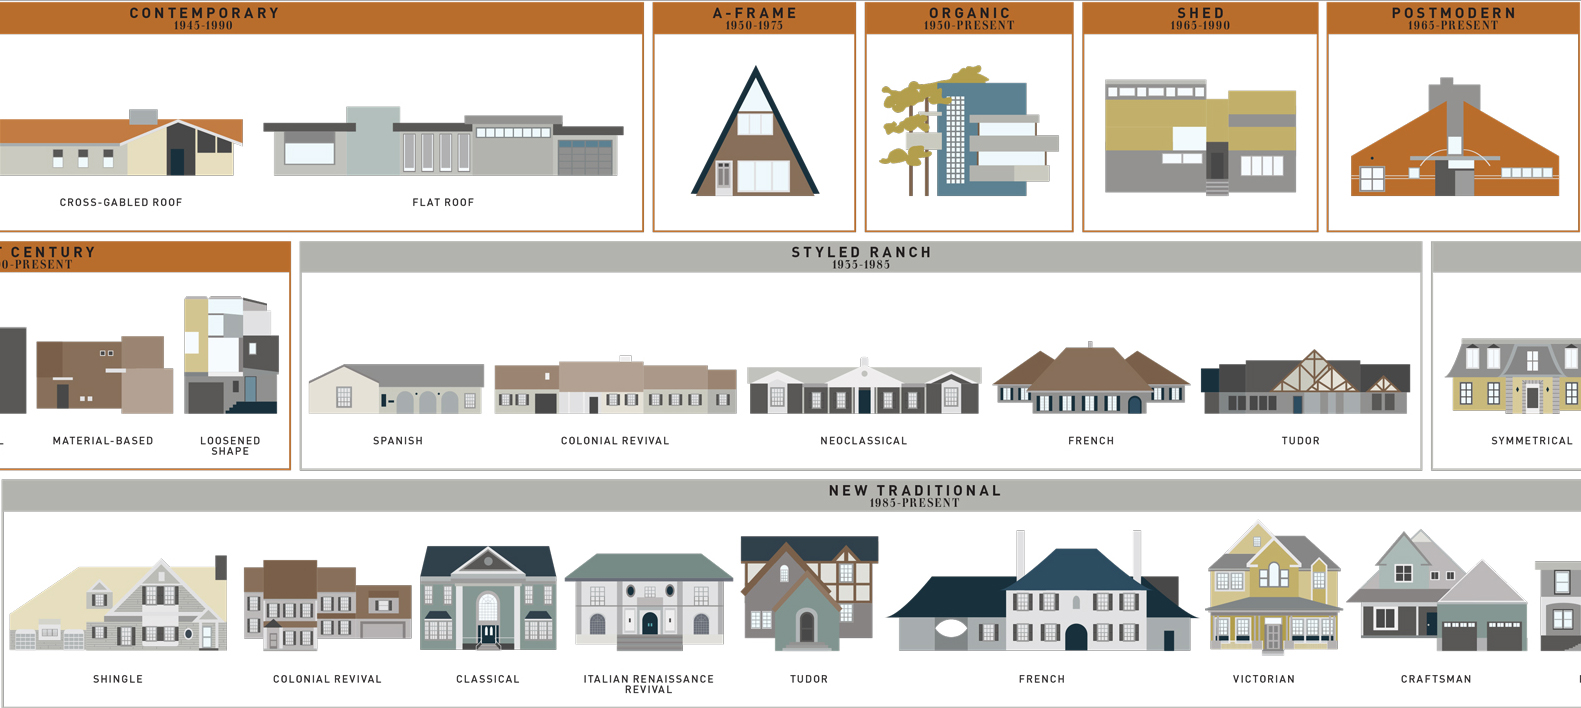 visual guides to domestic architectural designs - Architectural Desings